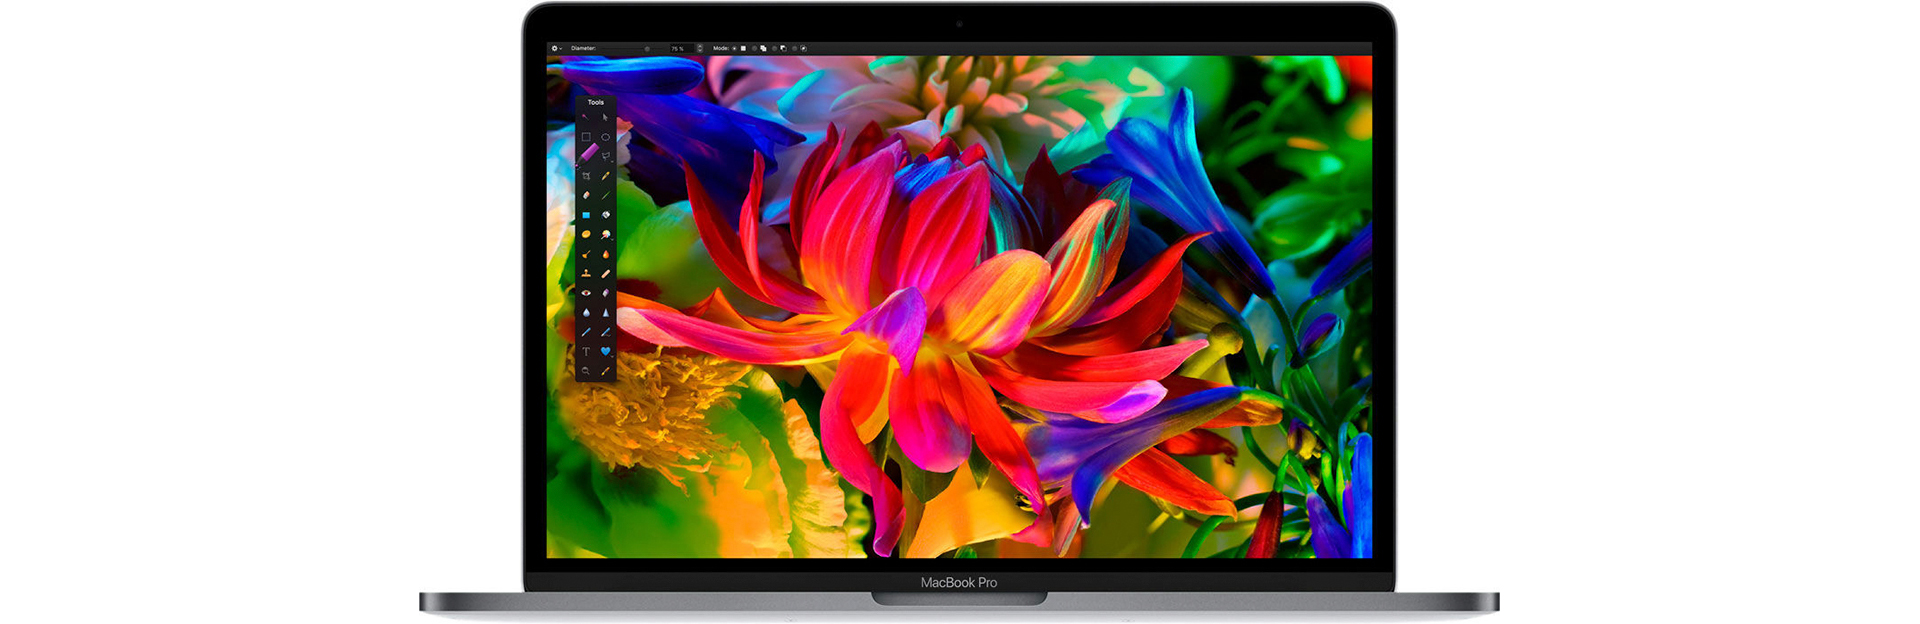 MBP132017-s-view8